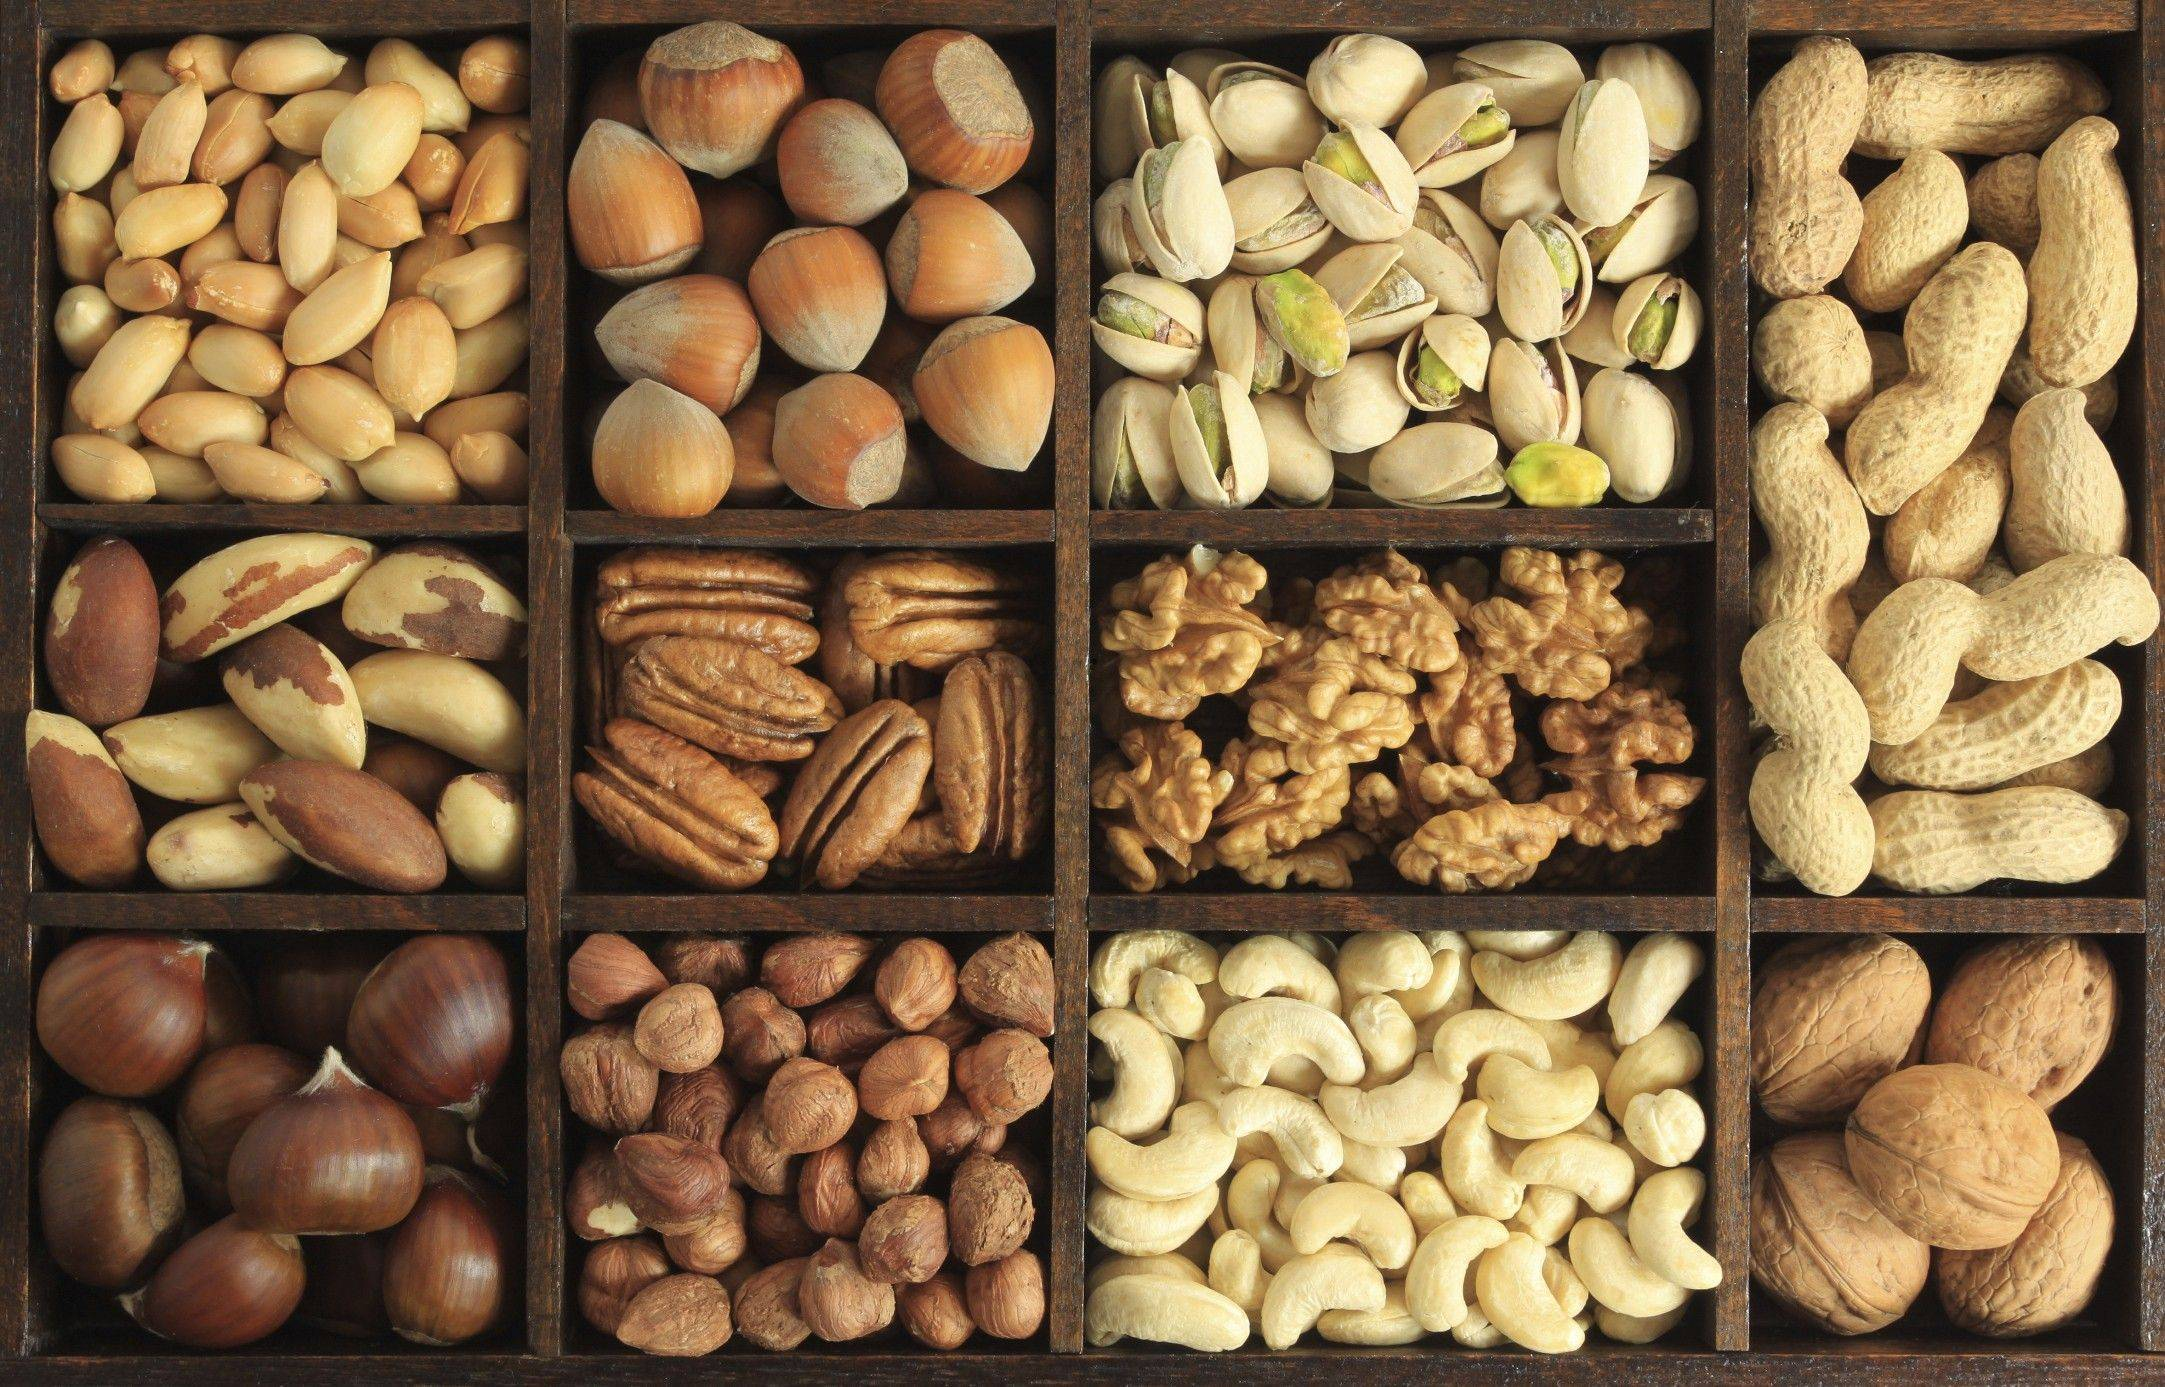 Almonds, pistachios part of good-for-you recipes